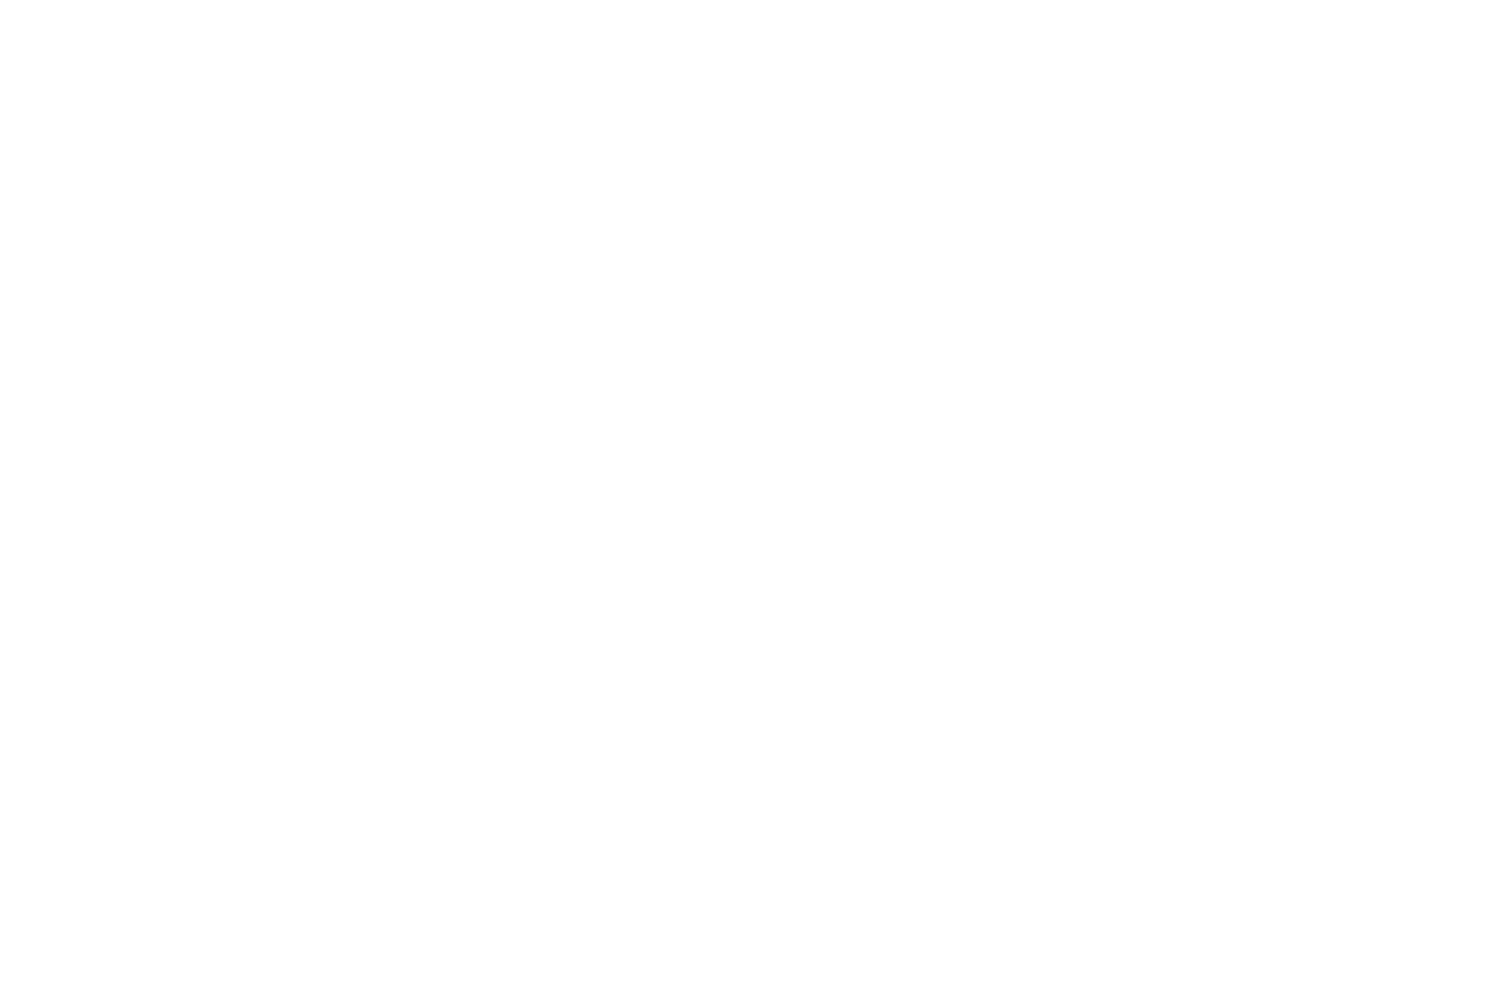 annalena philipson